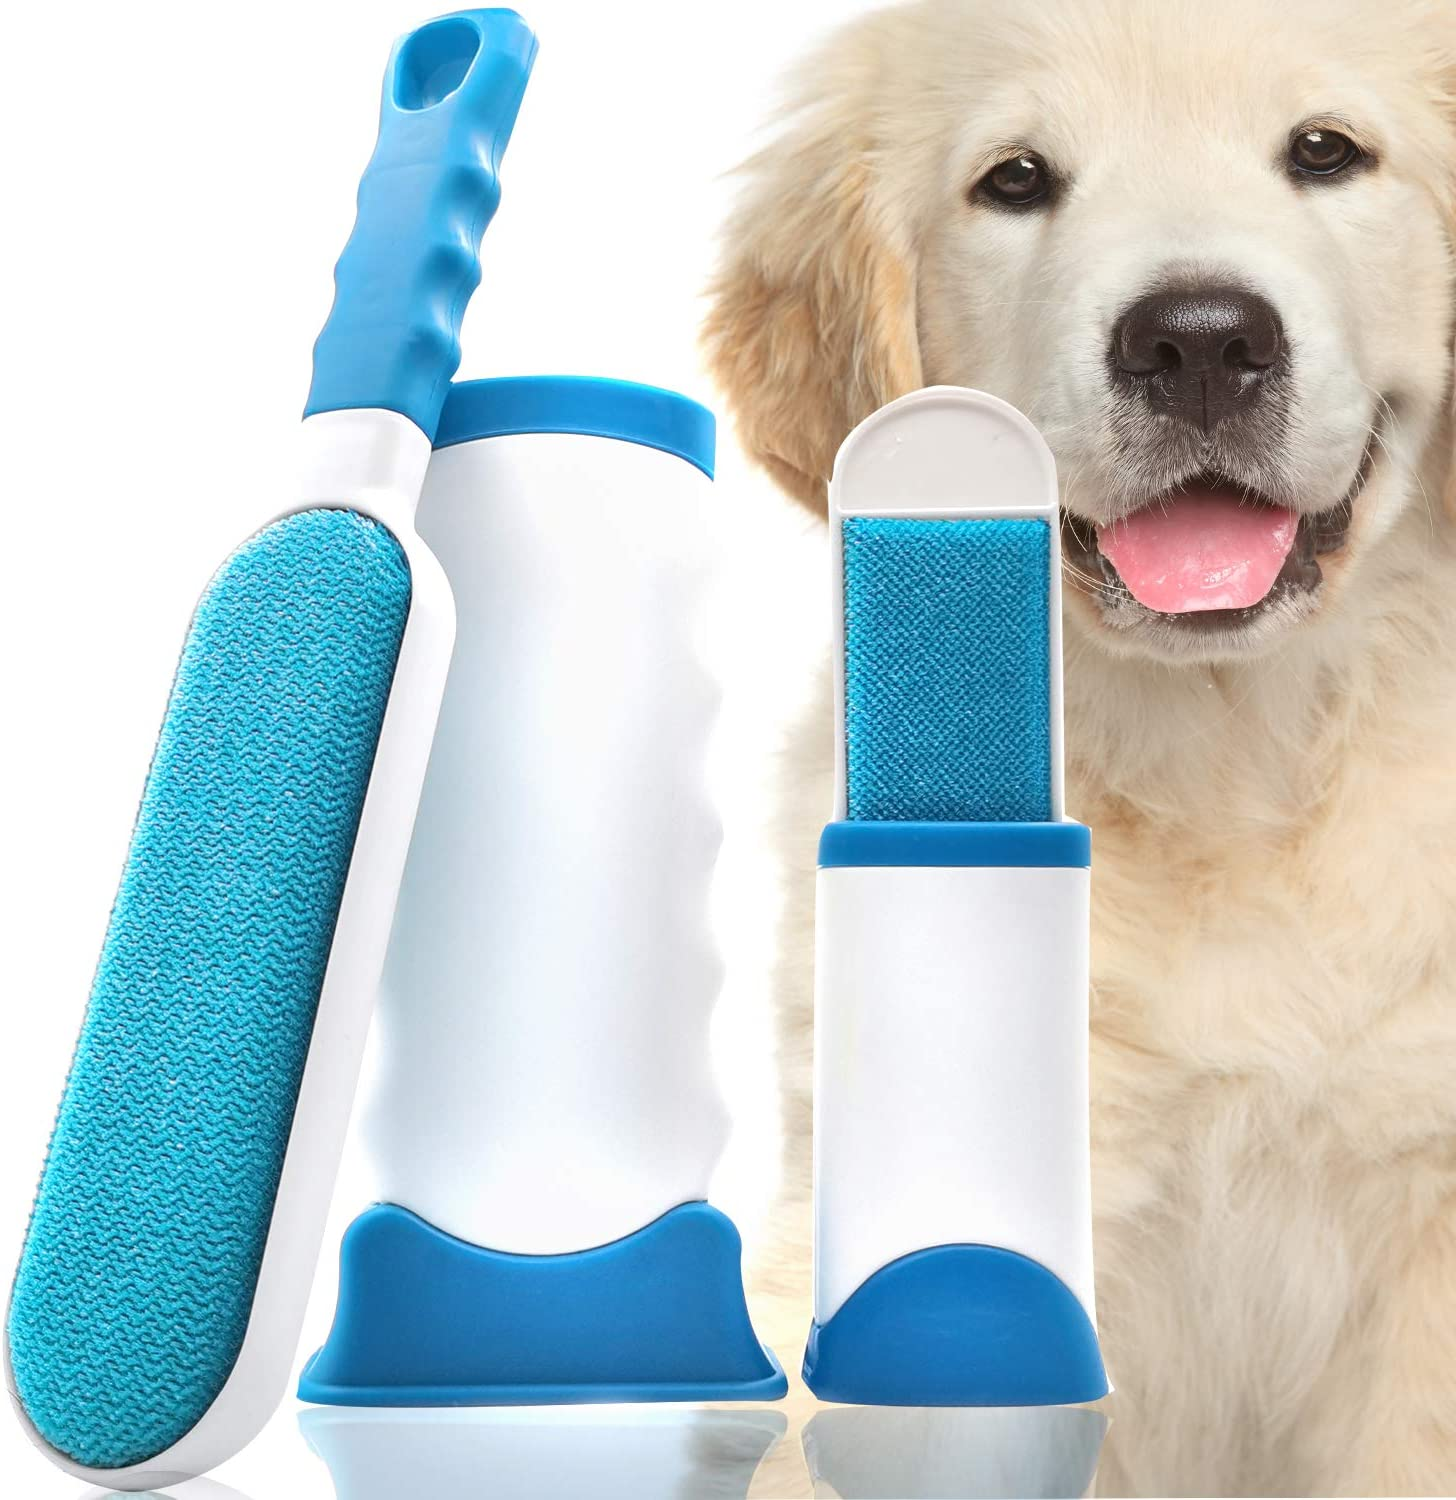 Hesland Pet Hair Remover Brush with Self-Cleaning Base Carpet with 1pcs Free Mini Pet Hair Remover Dog Cat Hair Remover for Furniture Clothing Car Seat Couch